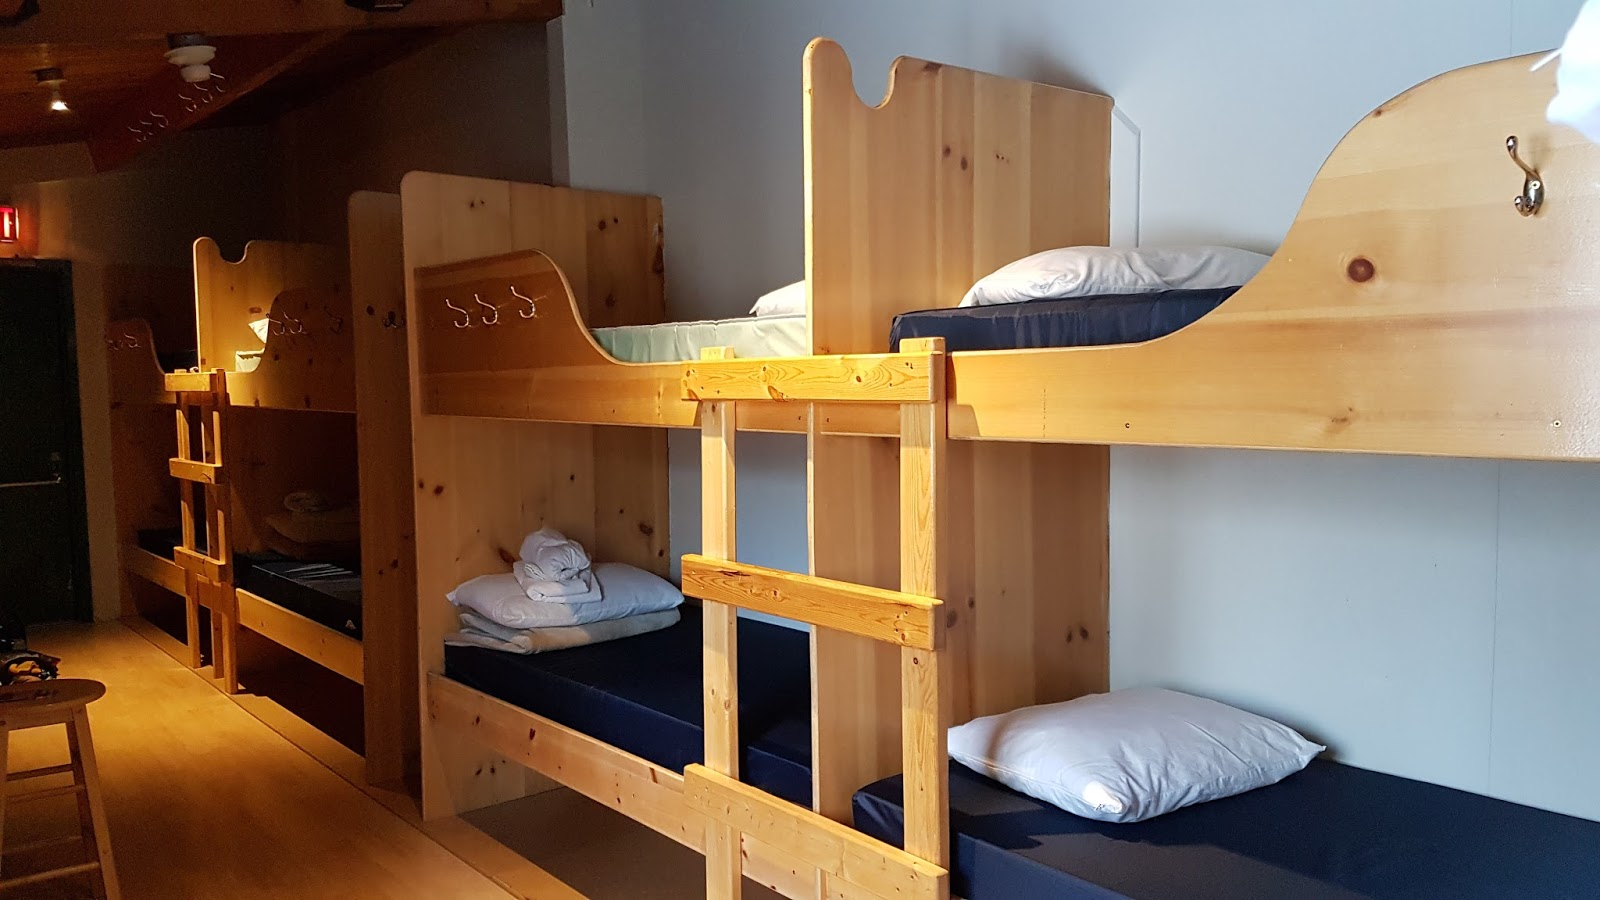 Kananaskis Wilderness Hostel Dorm Room